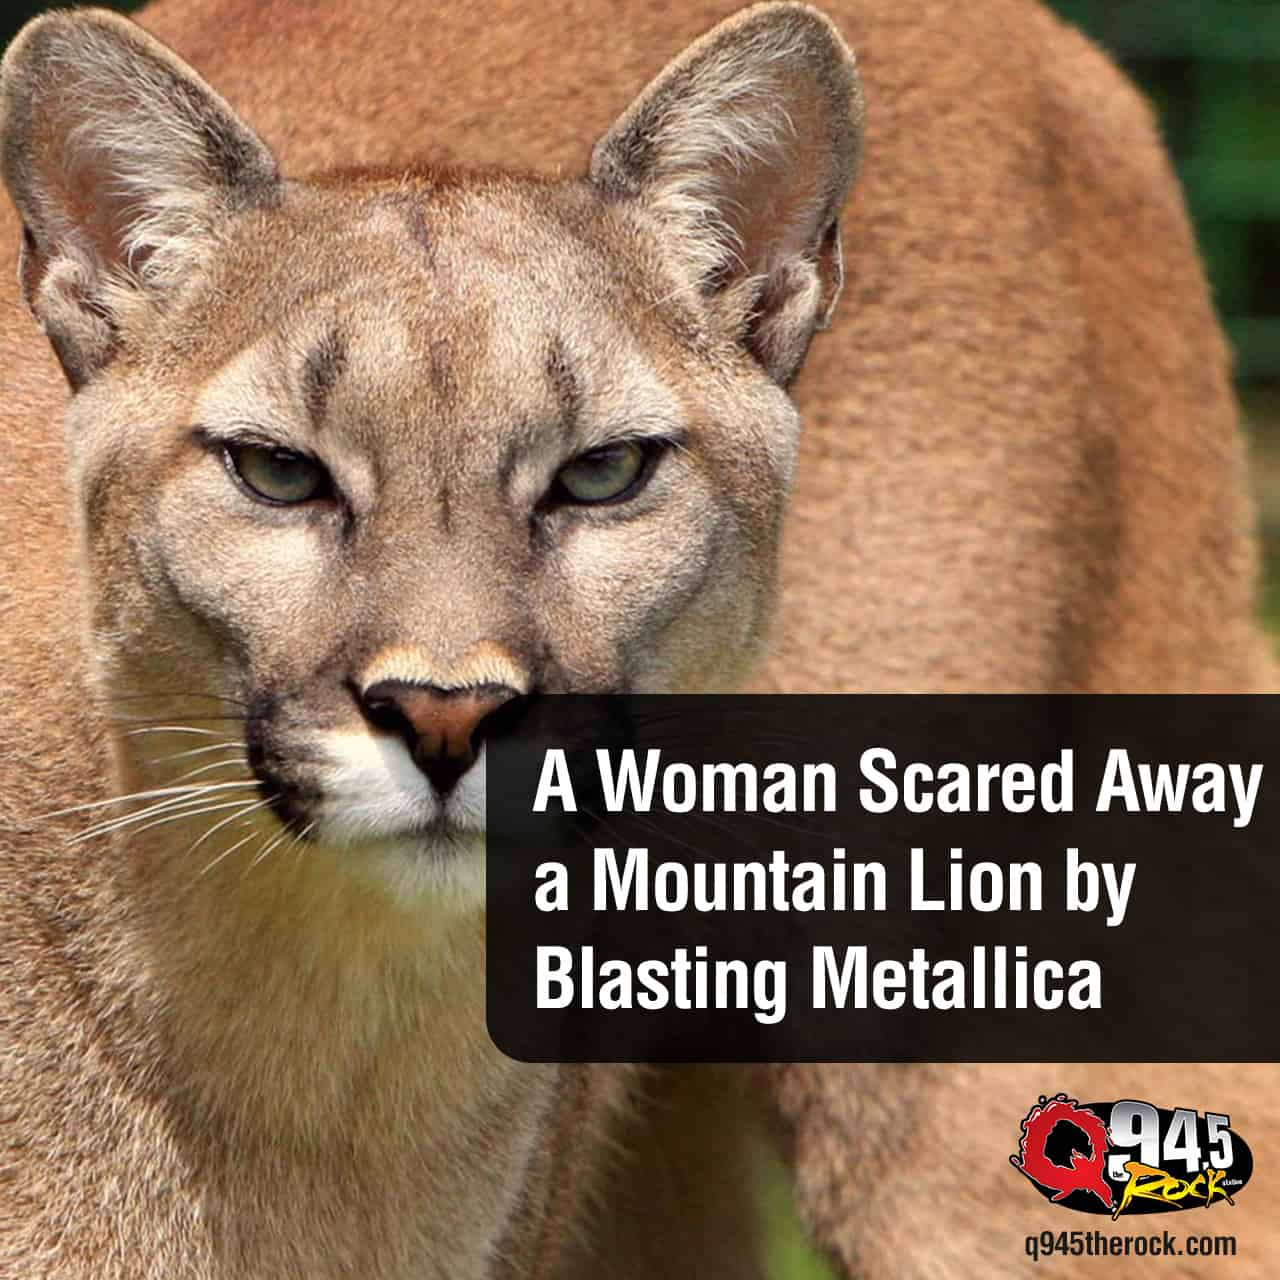 A Woman Scared Away a Mountain Lion by Blasting Metallica